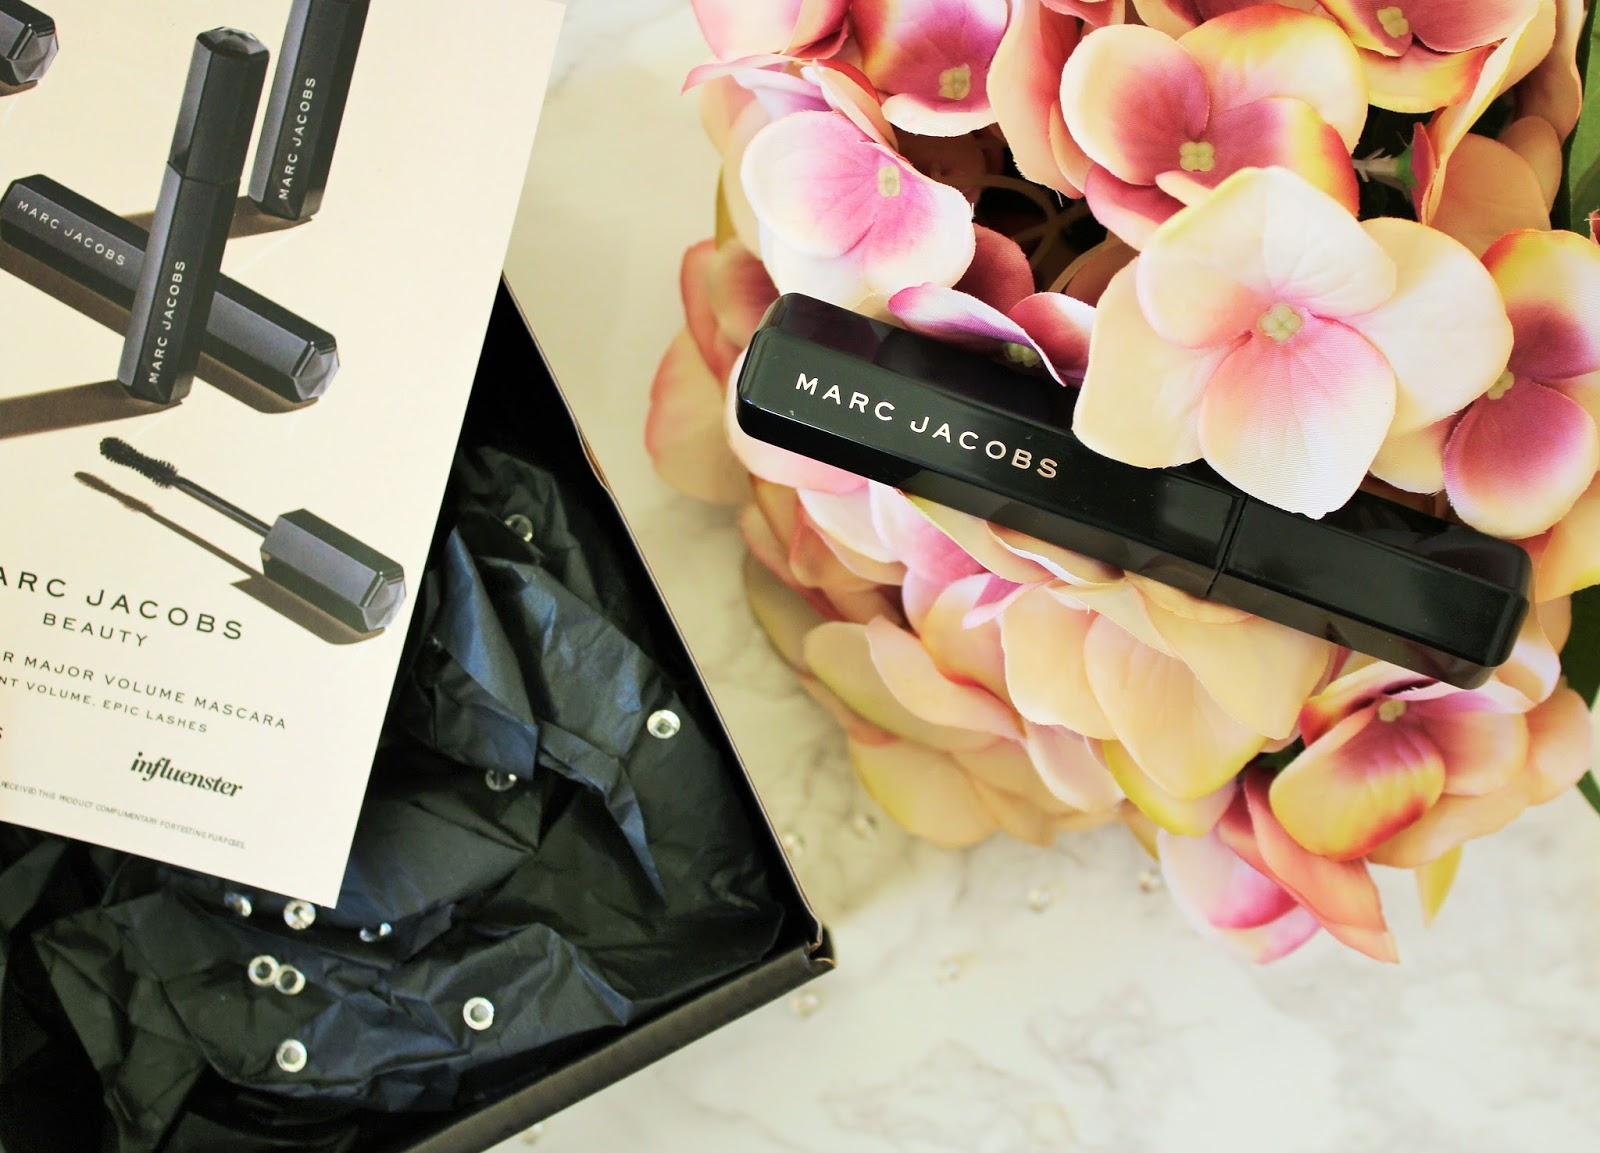 Marc Jacobs Velvet Noir Major Volume Mascara Review - 4